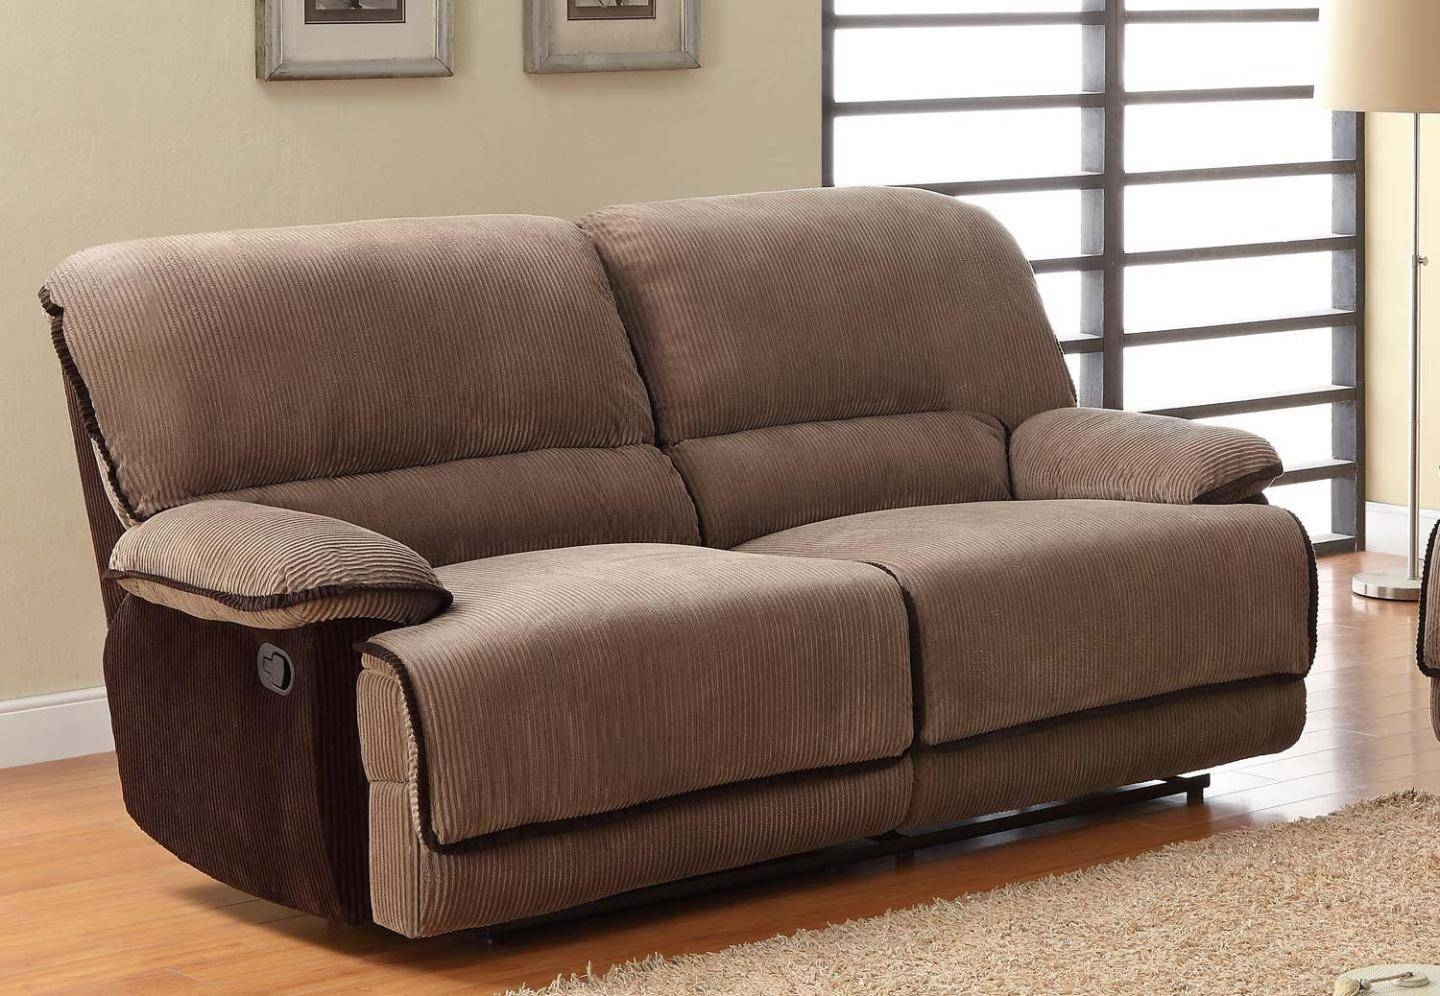 Furniture: Sofa Recliner Covers | Sofa Covers For Recliners With Sofa Armchair Covers (View 19 of 30)